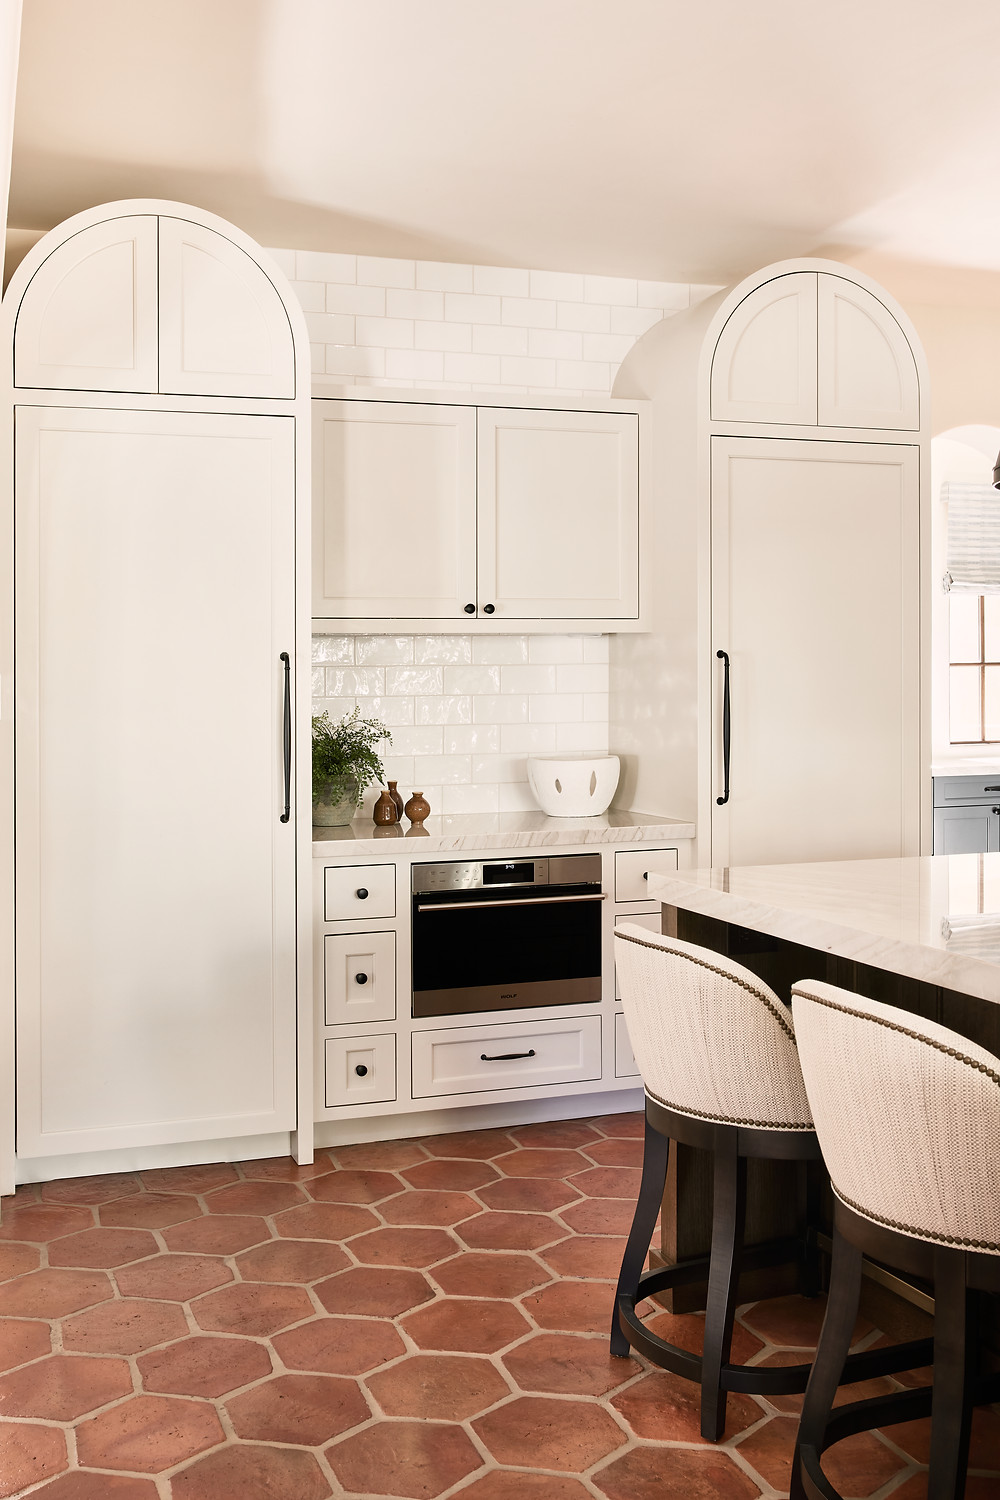 Spanish-style kitchen with terra cotta tile